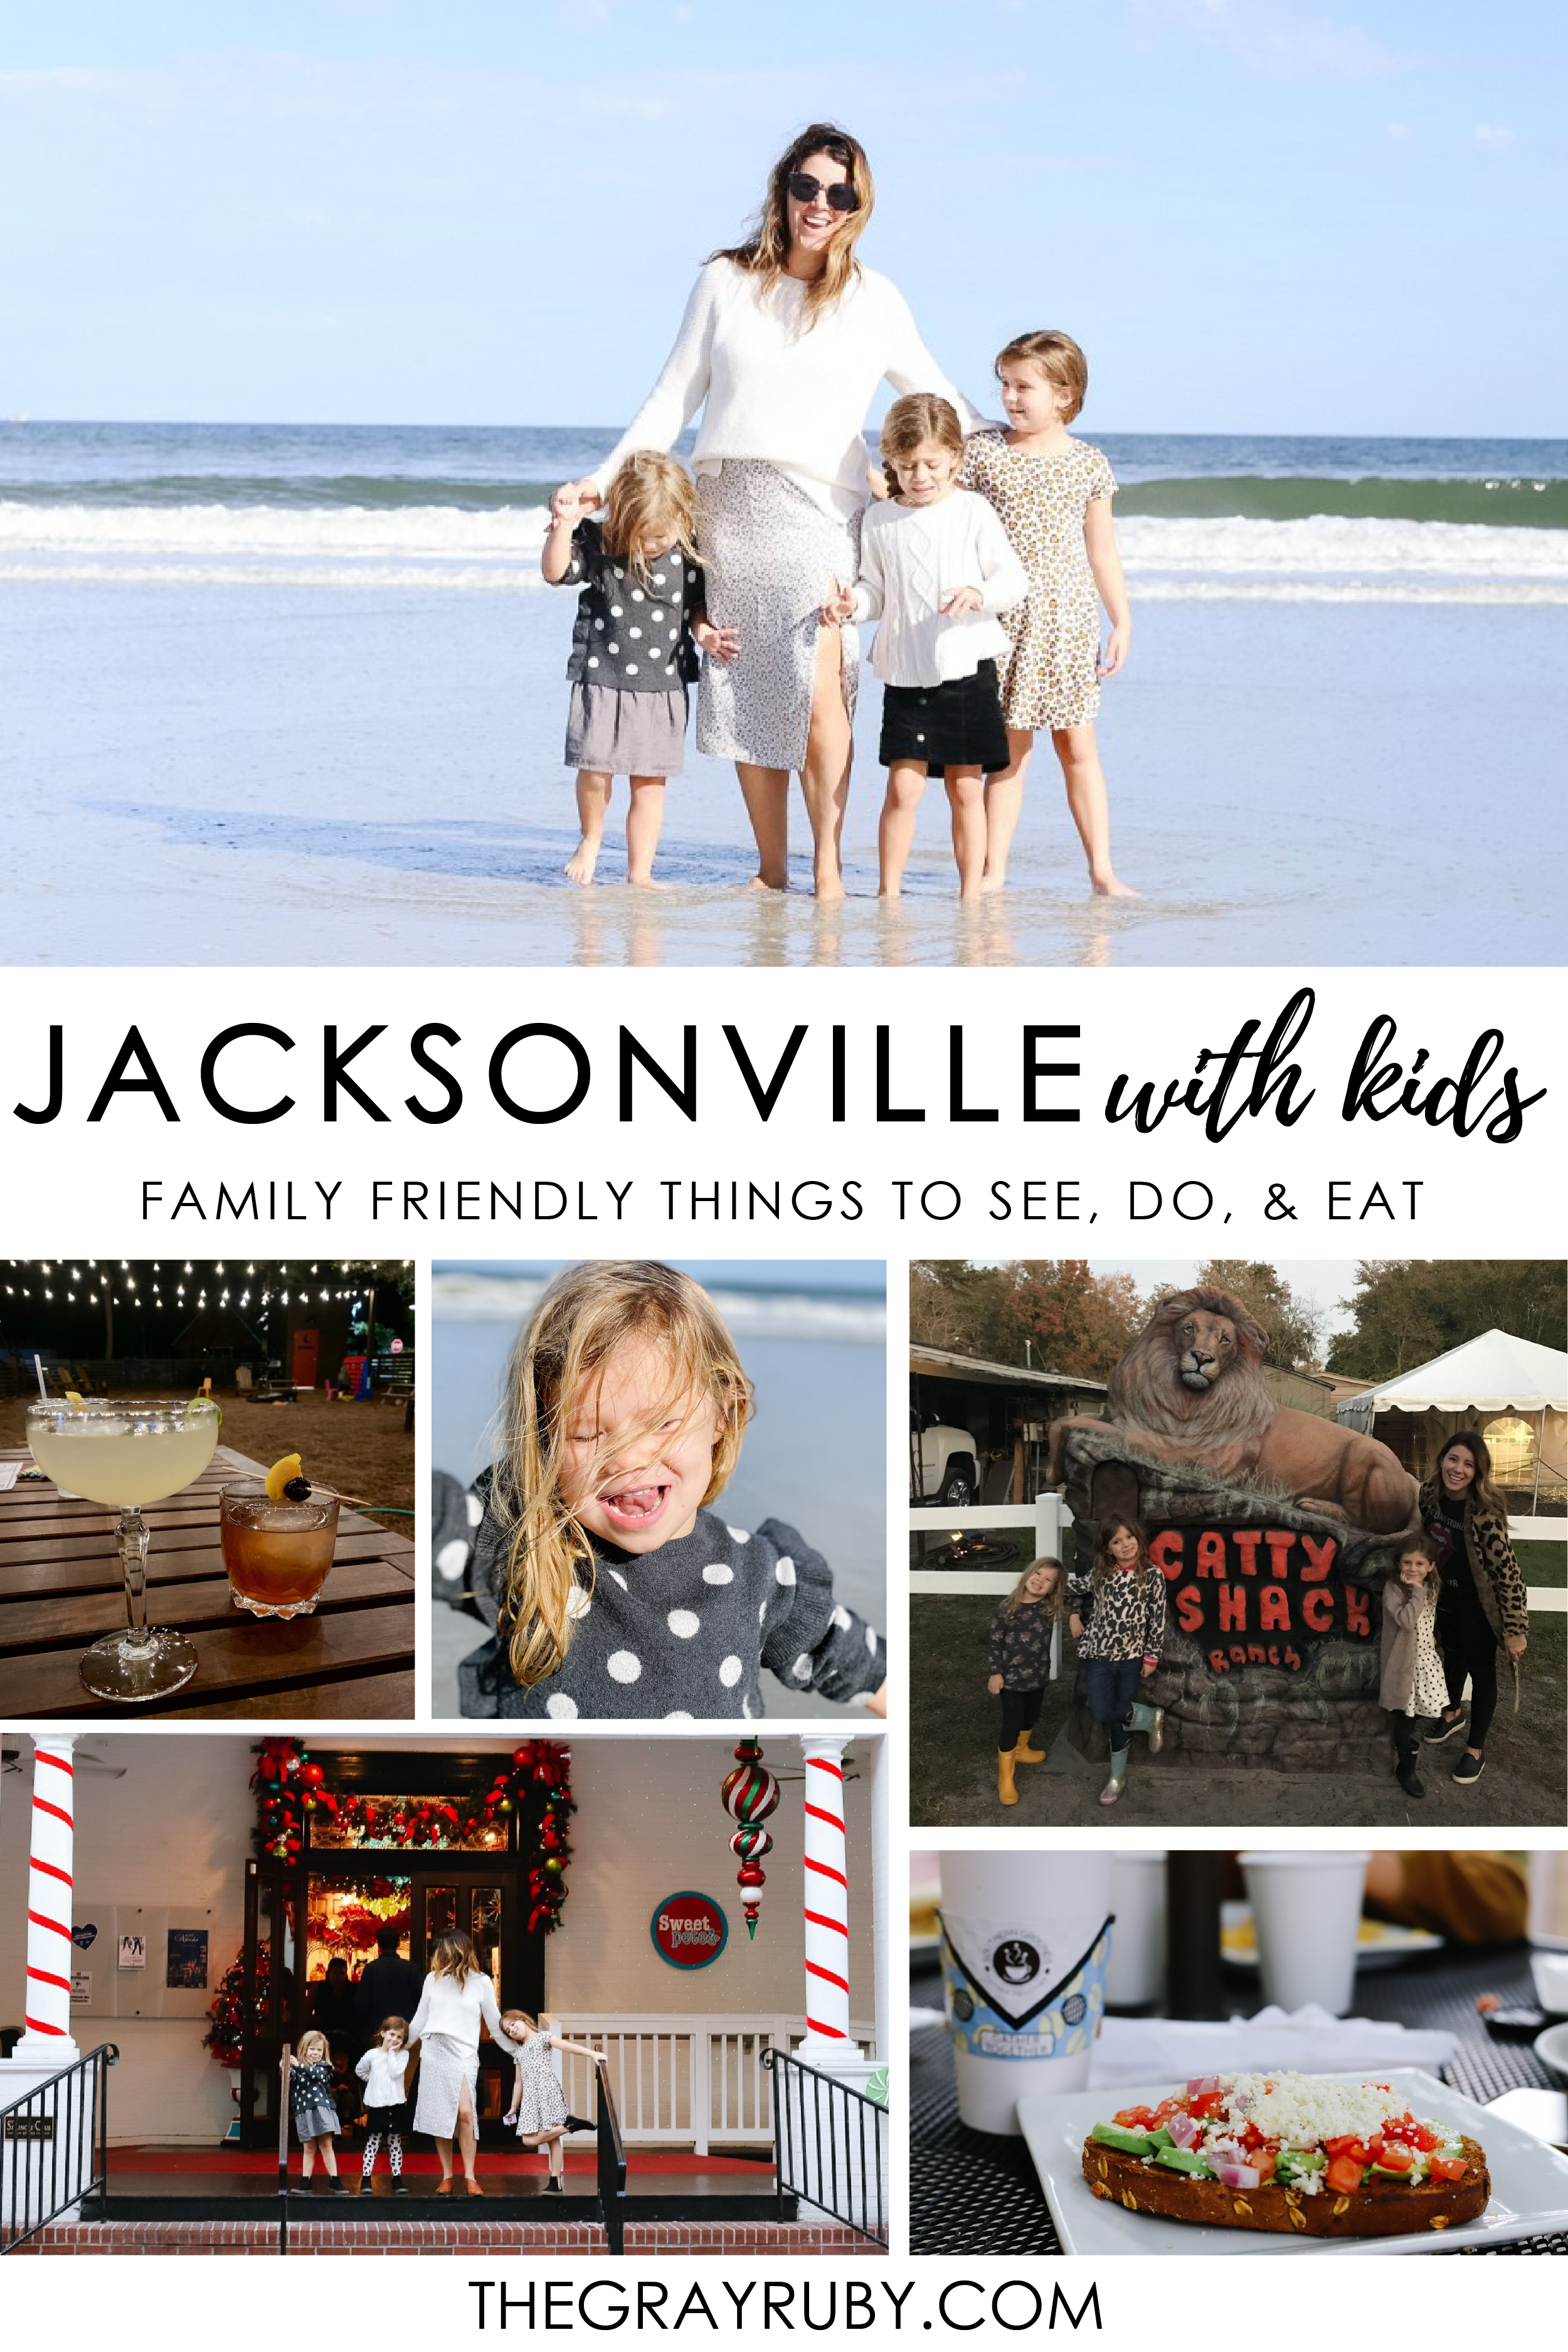 Jacksonville With kids - what to do, see and eat when traveling to Florida with your family